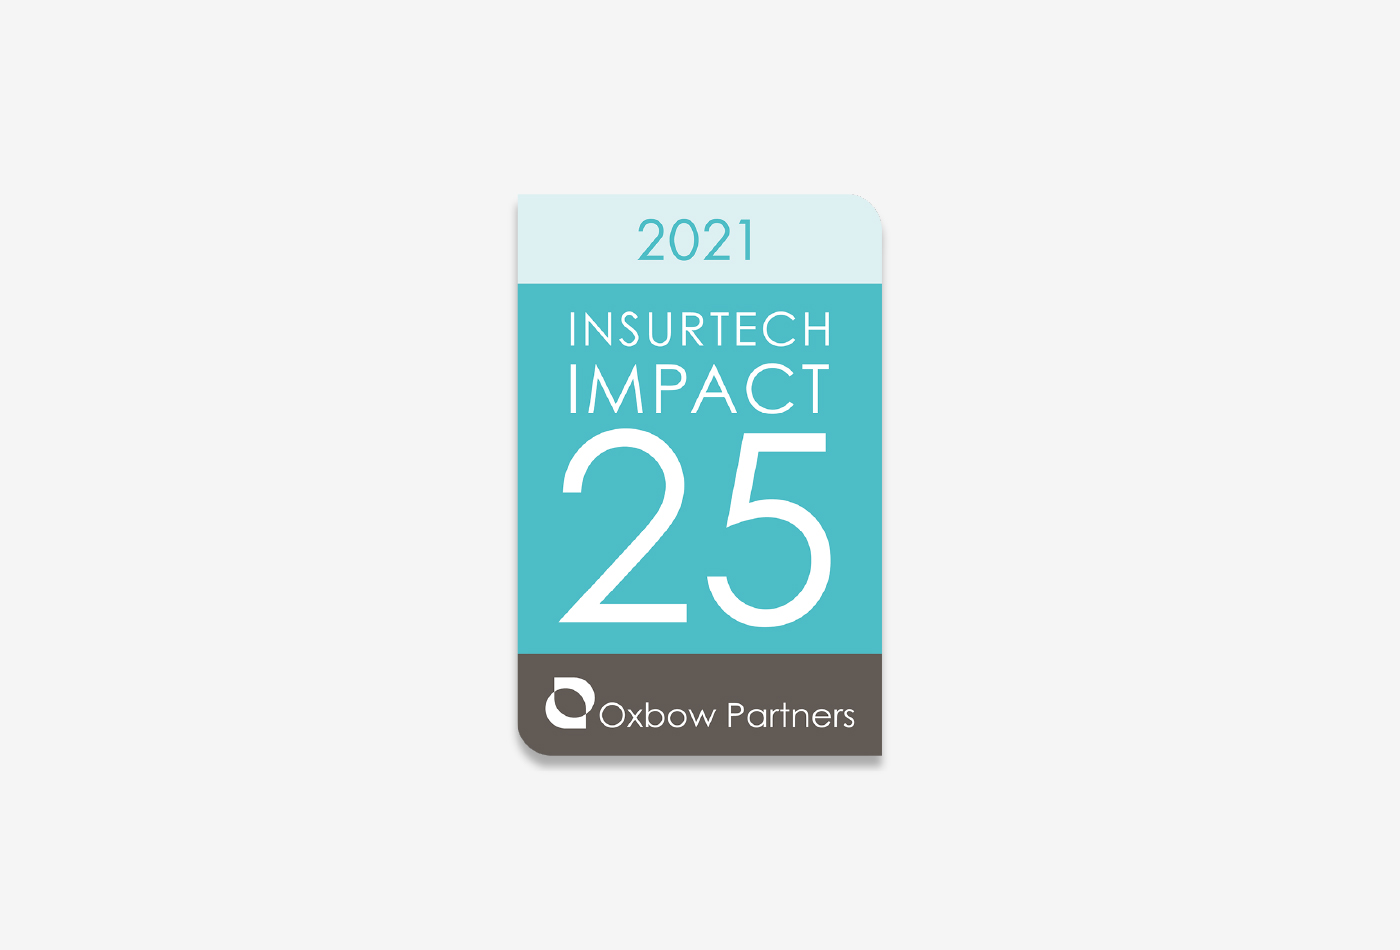 The Floow Featured in 2021's Oxbow Partners 'Insurtech Impact 25' Report